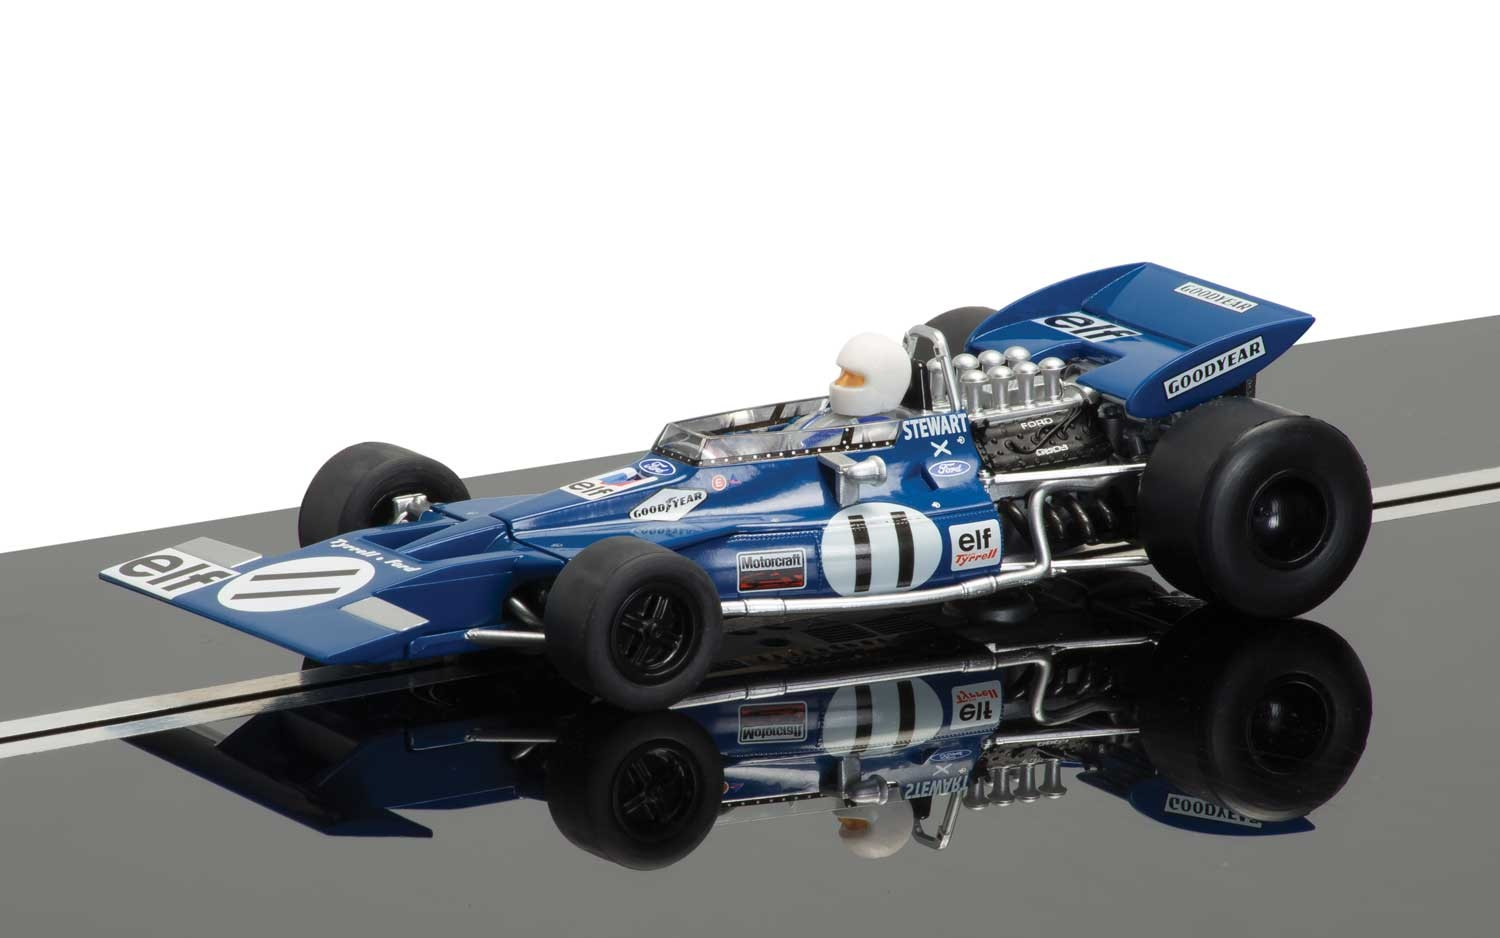 Legends Tyrrell F1 Jackie Stewart LE 1/32 Slot Car